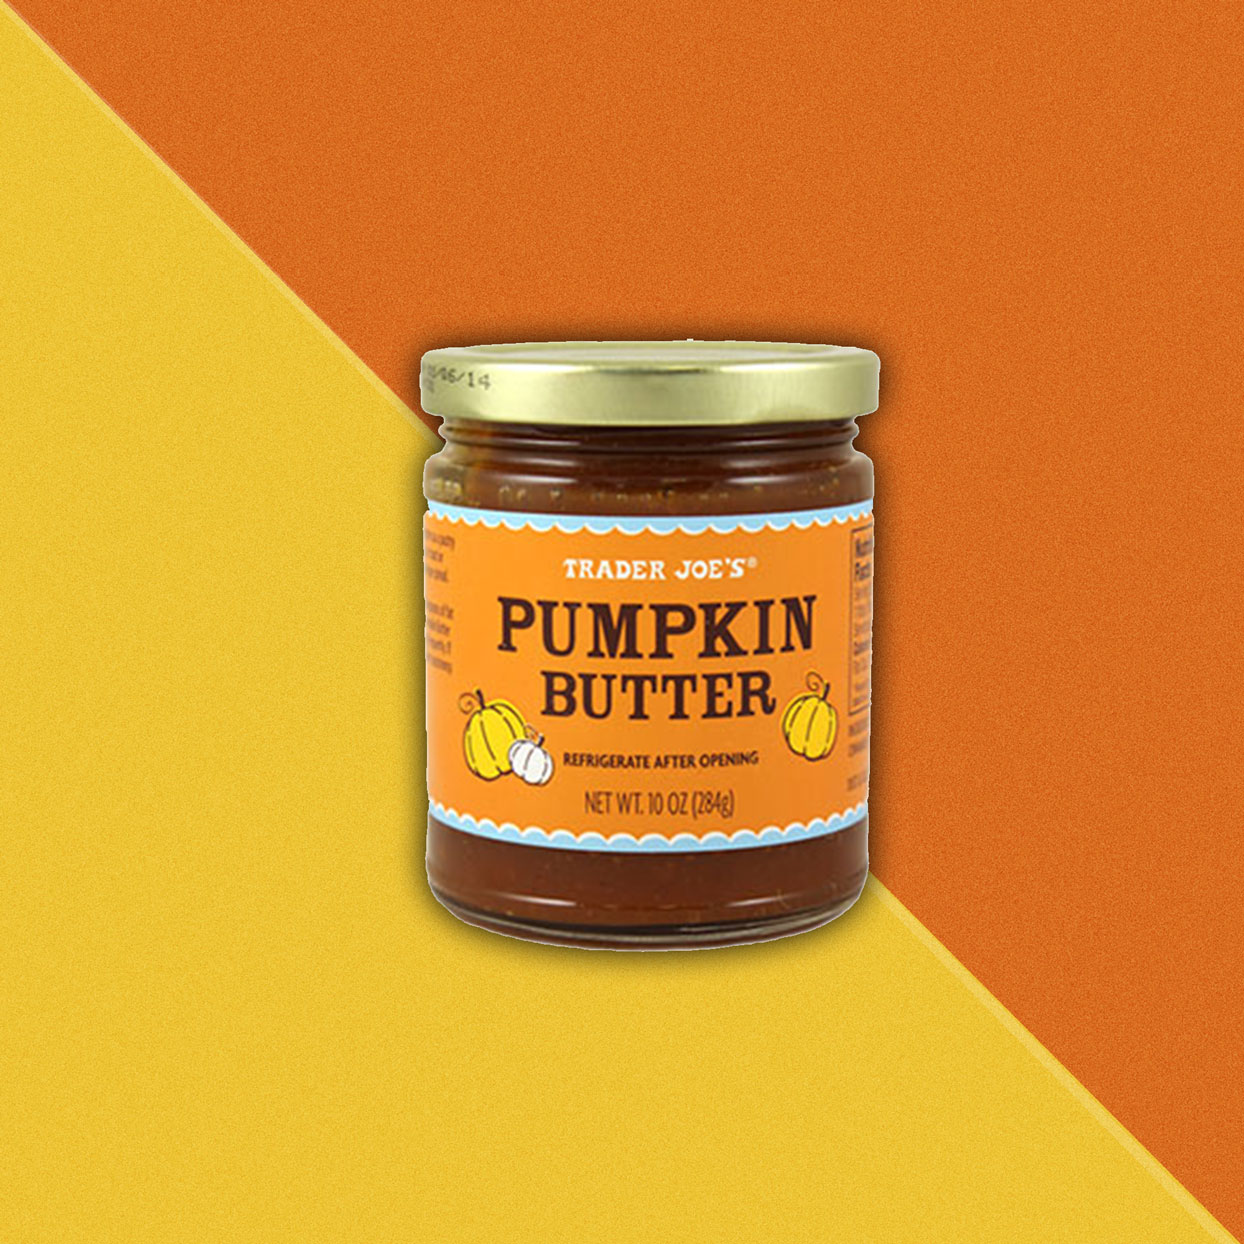 Pumpkin butter jar